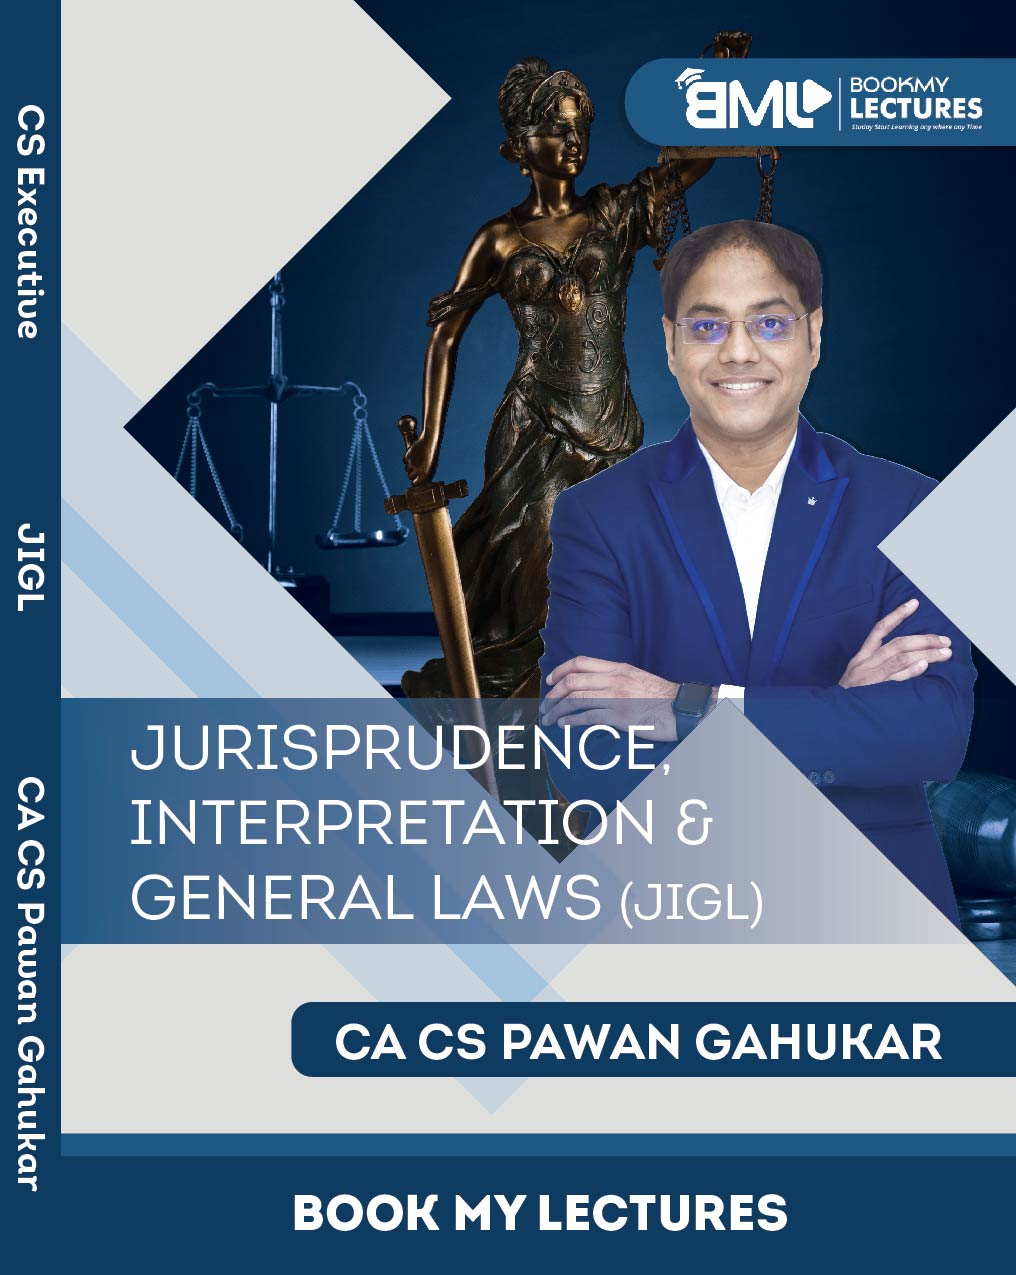 Best CS Executive Classes - JIGL - CA CS Pawan Gahukar